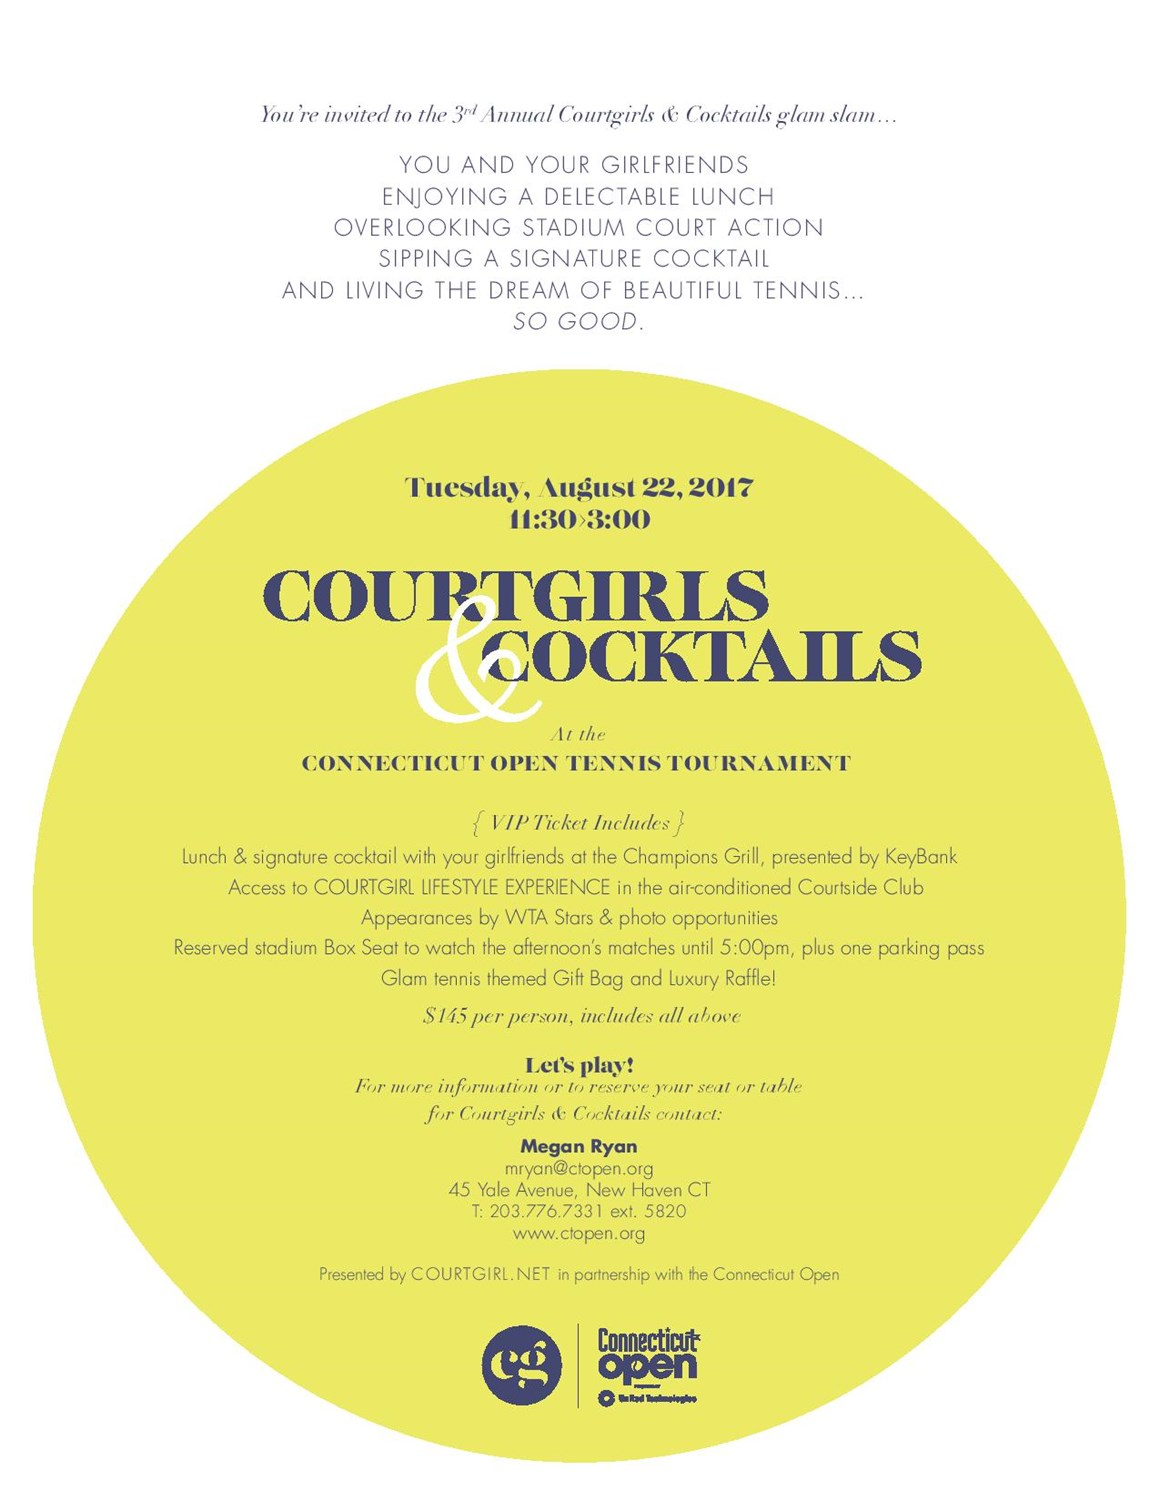 COURTGIRLS_COCKTAILS_INVITE2_2017-page-001